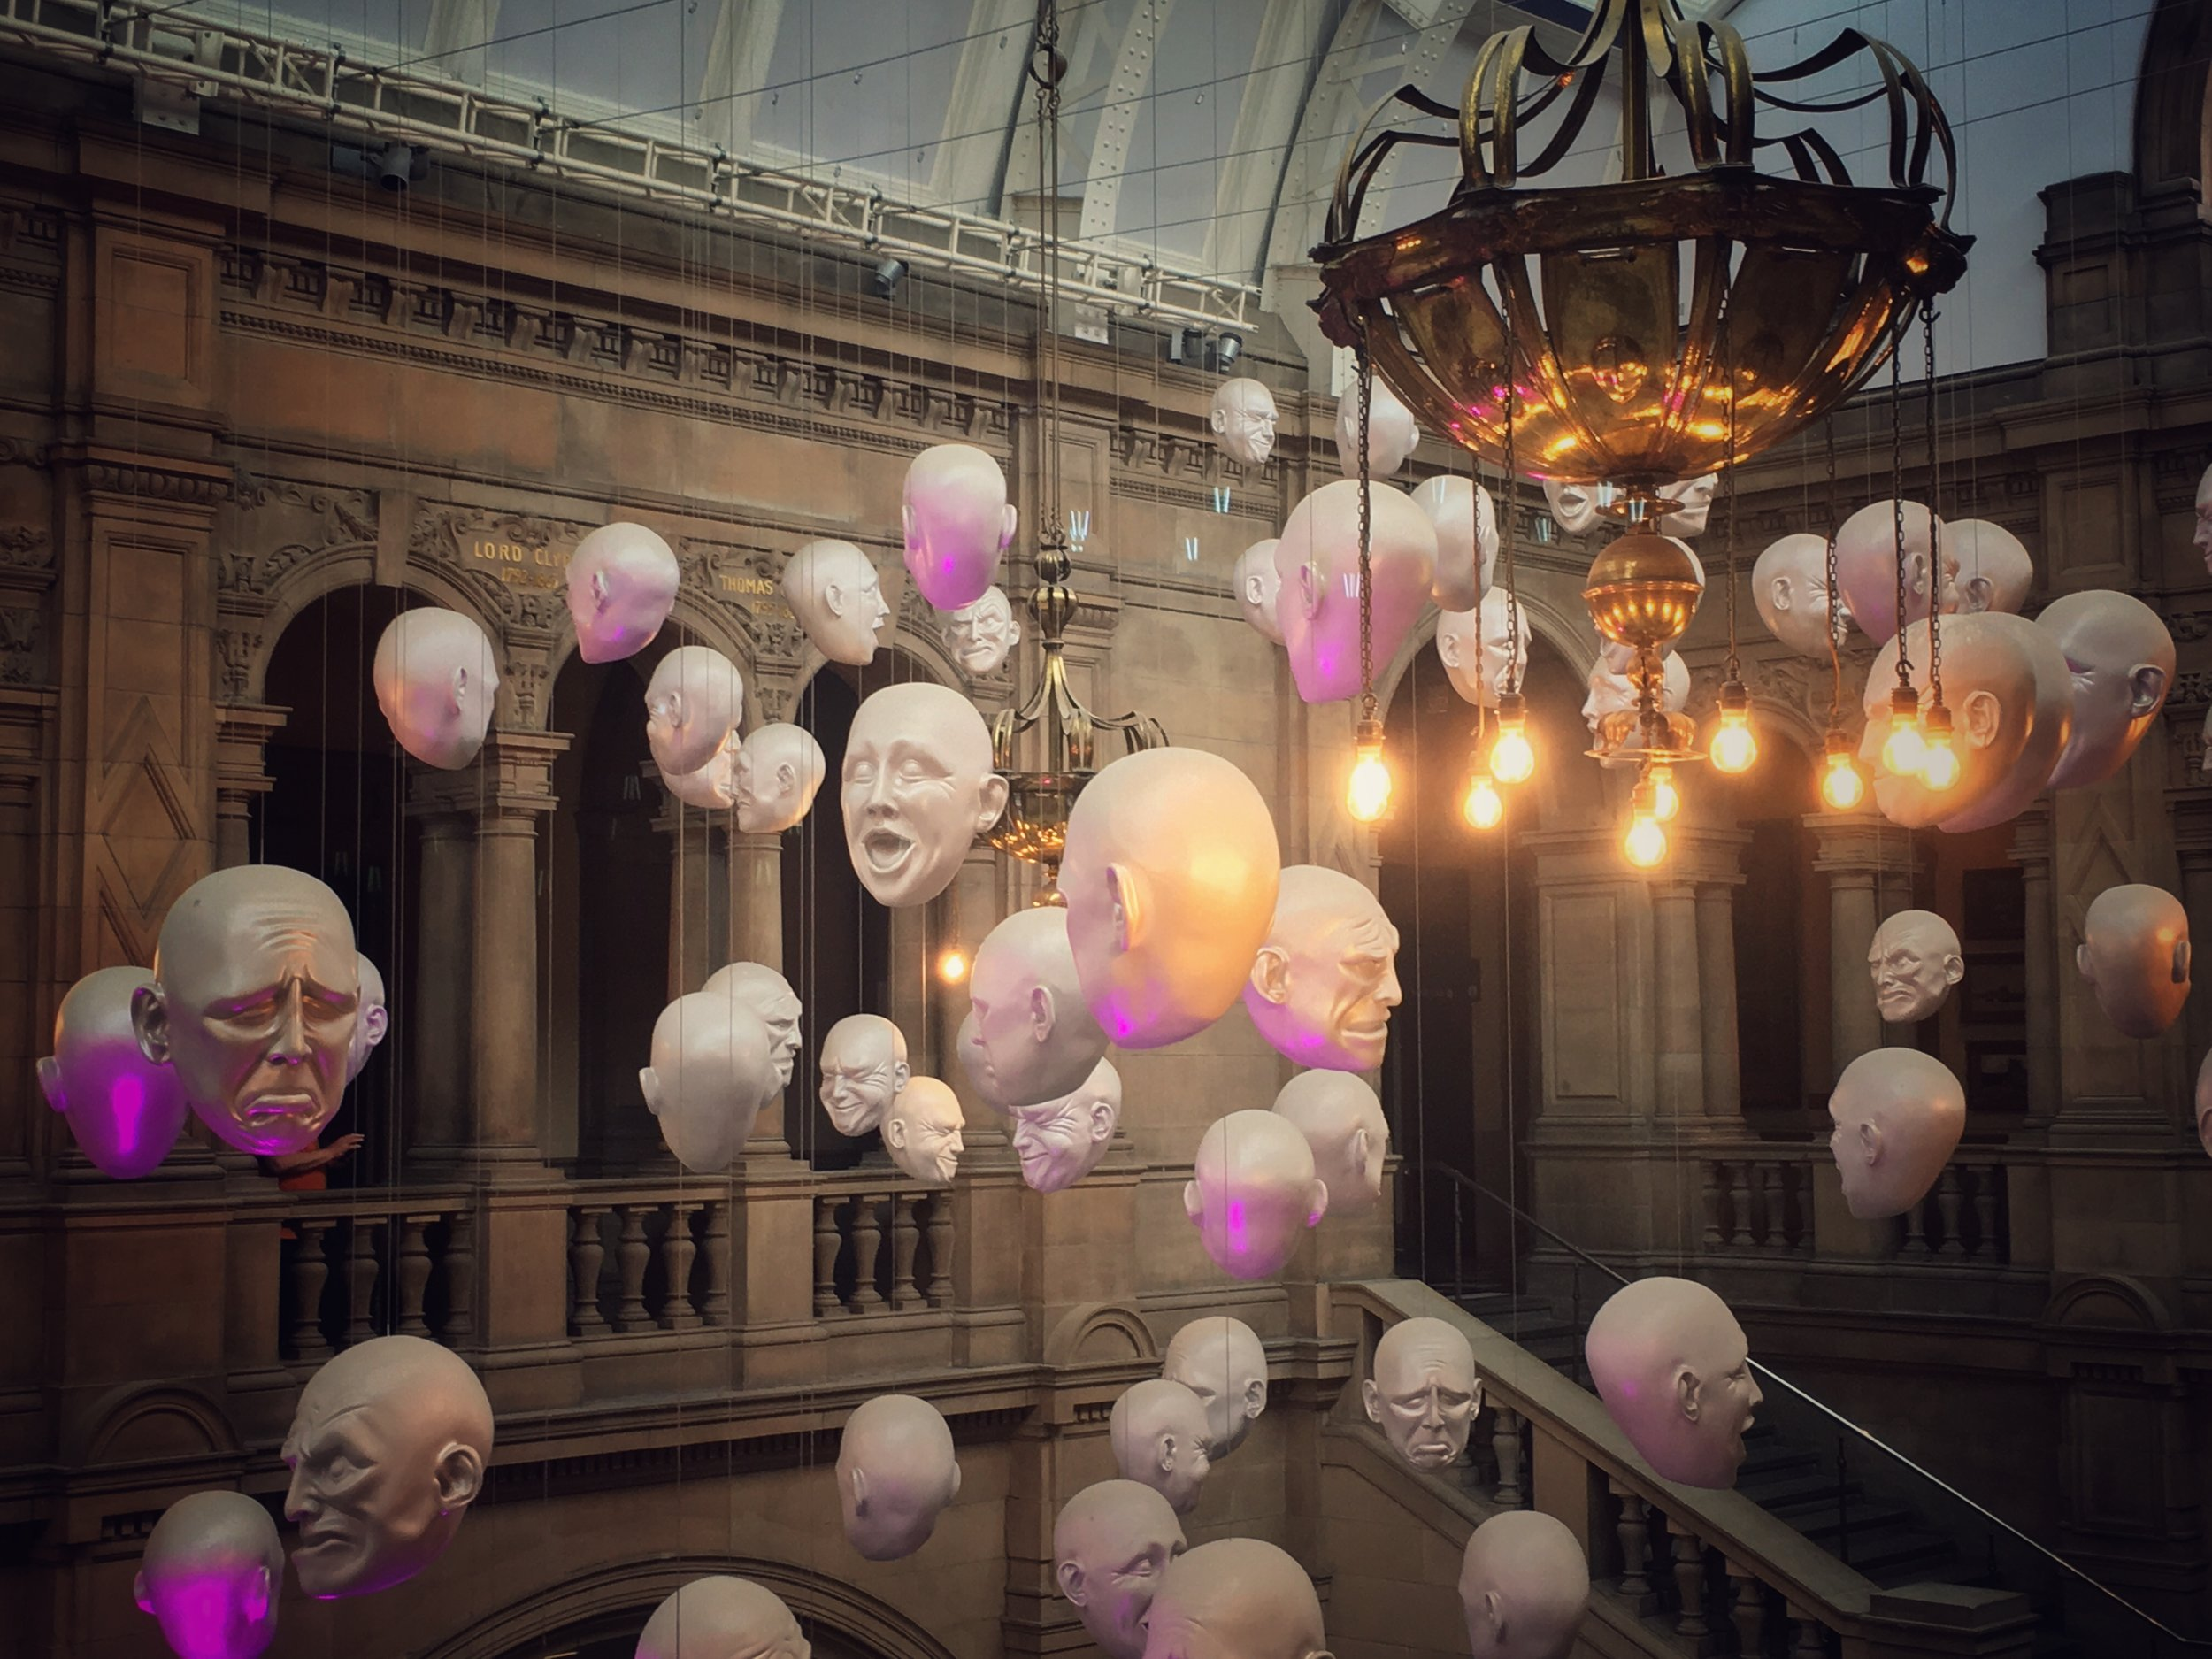 Accurate depiction of whats happening in my head. From the Kelvingrove Museum, Glasgow Scotland